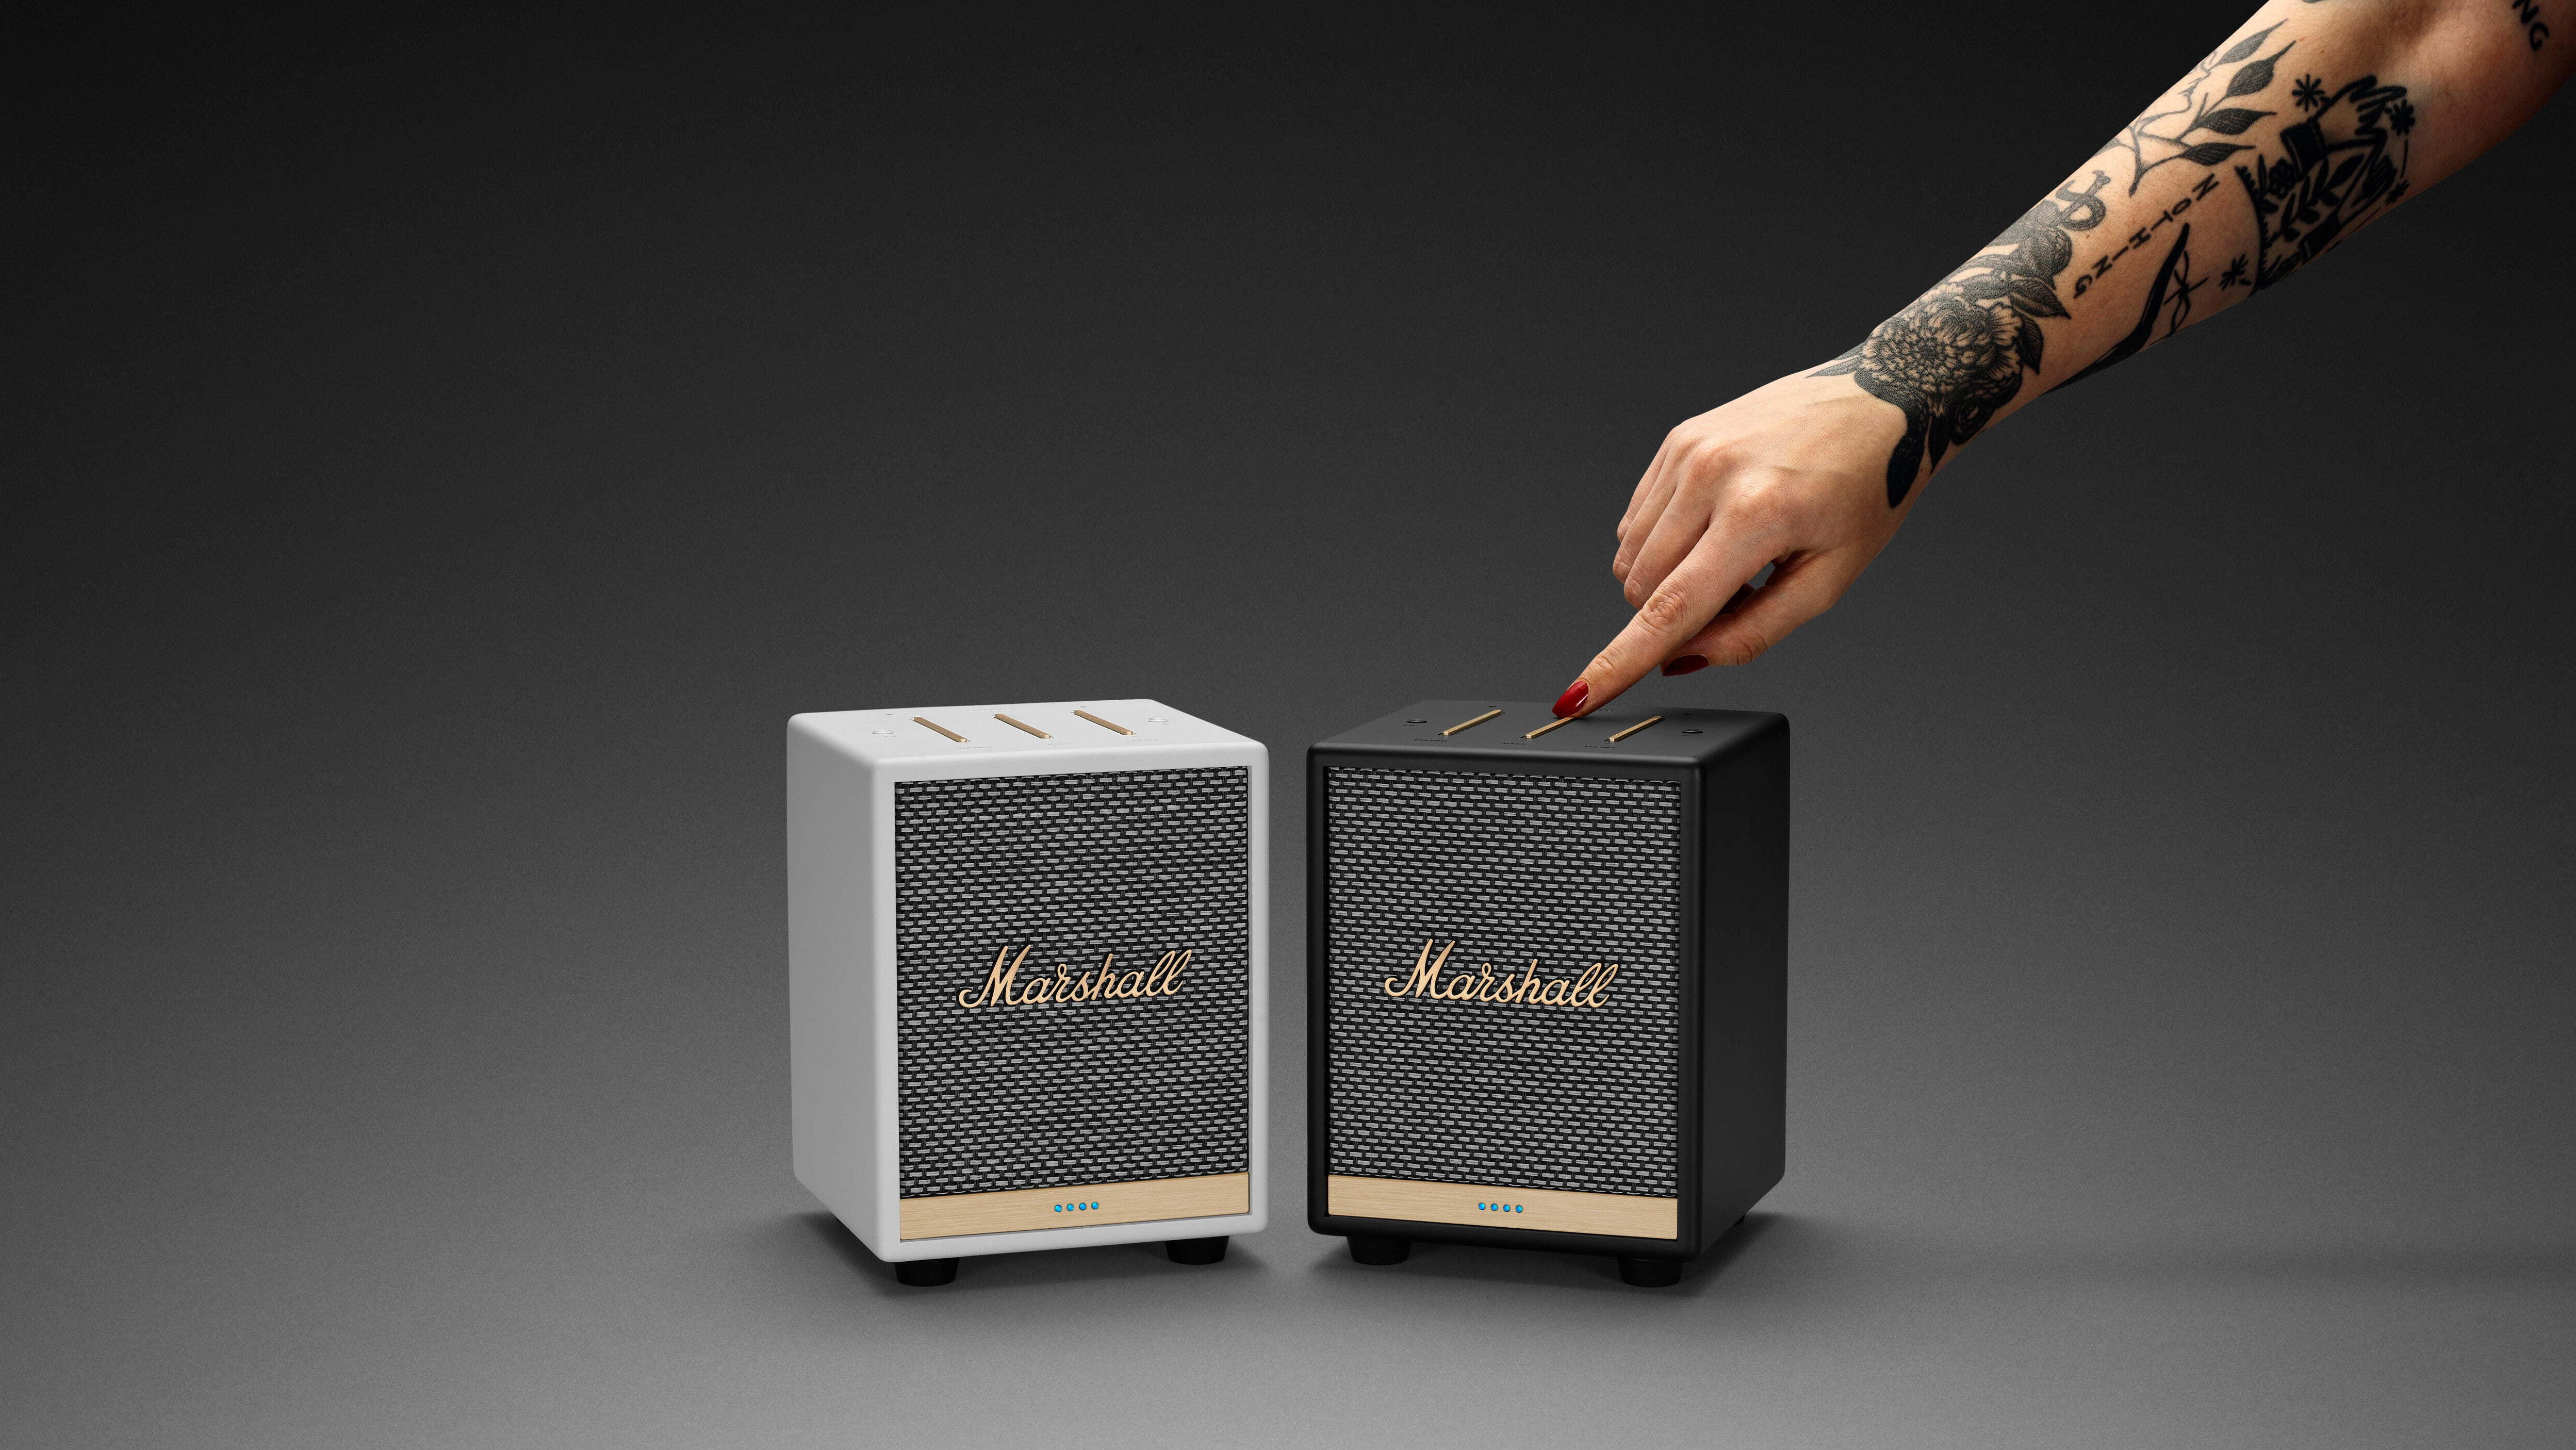 Marshall's New Itty Bitty Smart Speaker Packs Big Sound